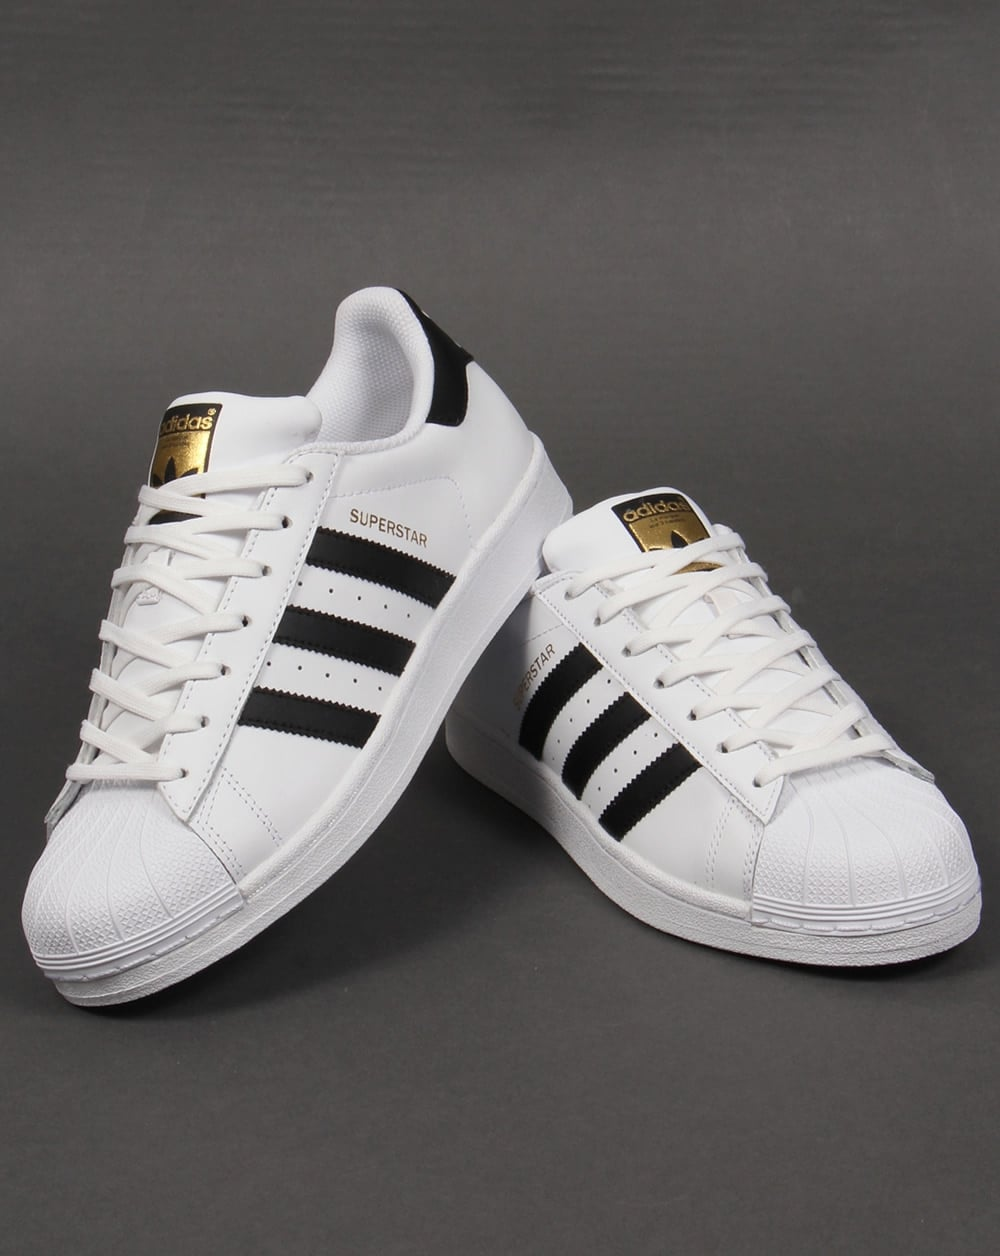 adidas superstar white